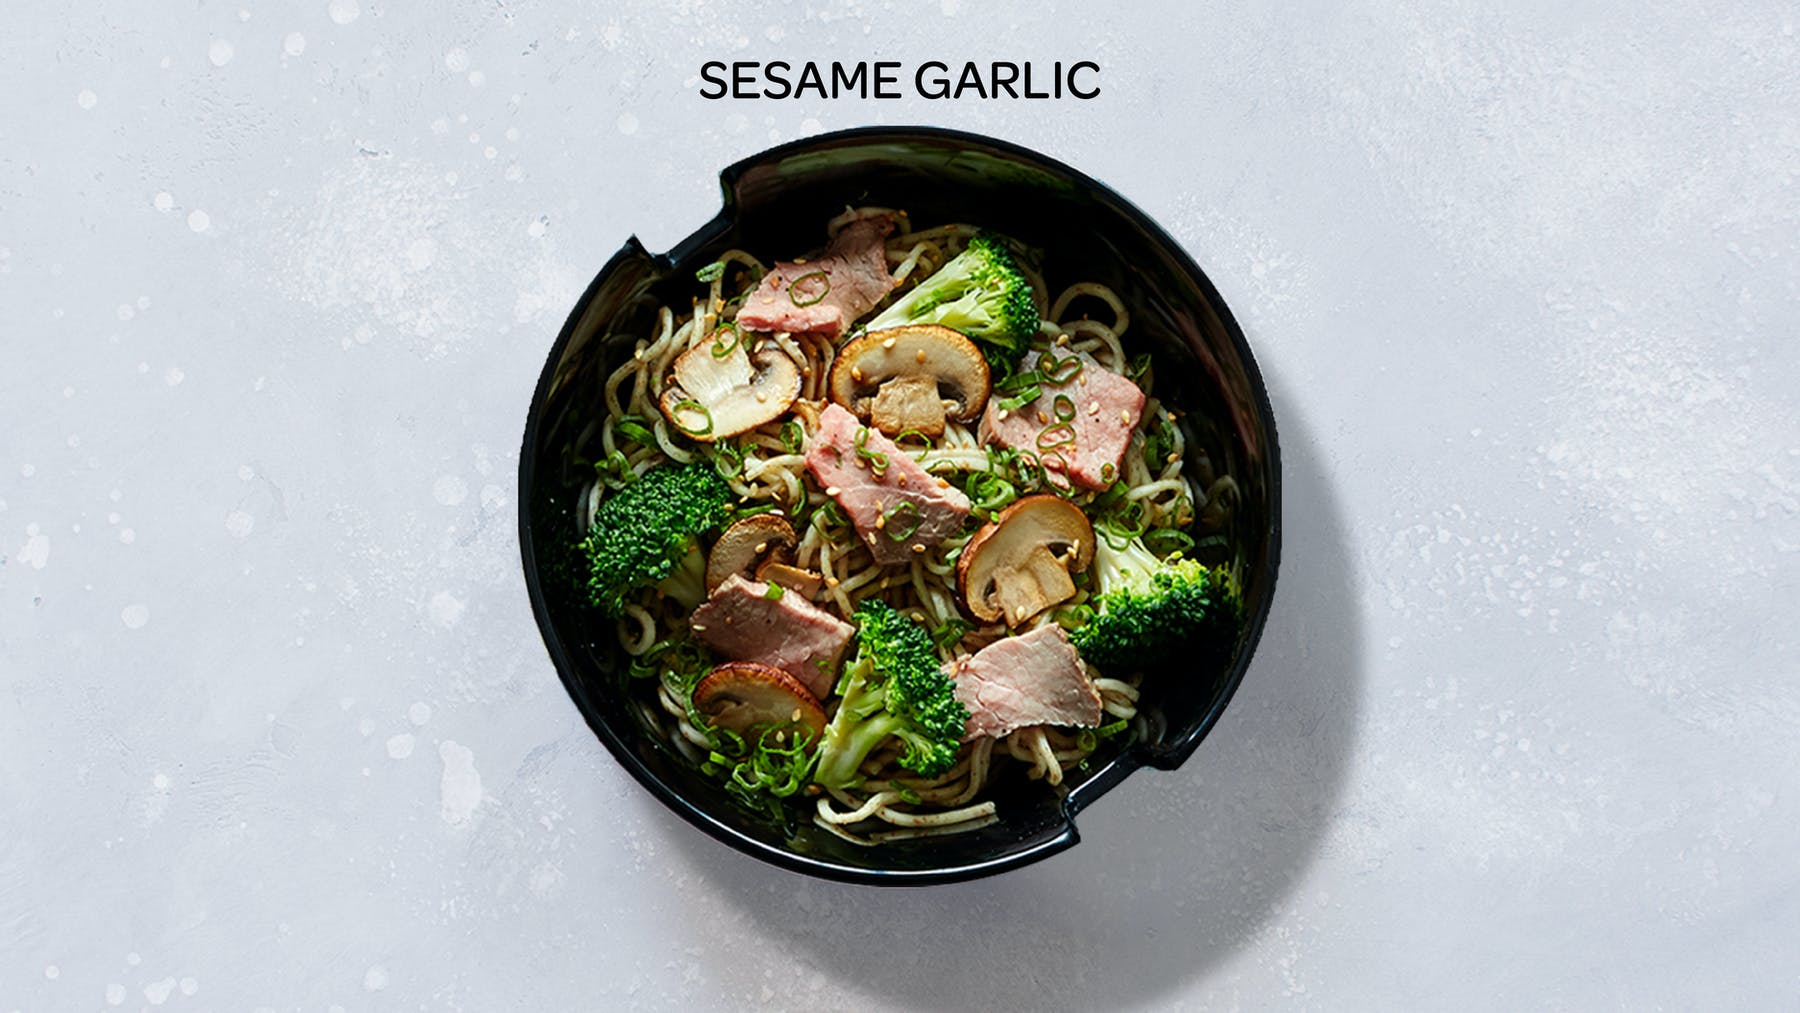 a bowl of sesame garlic stir-fry